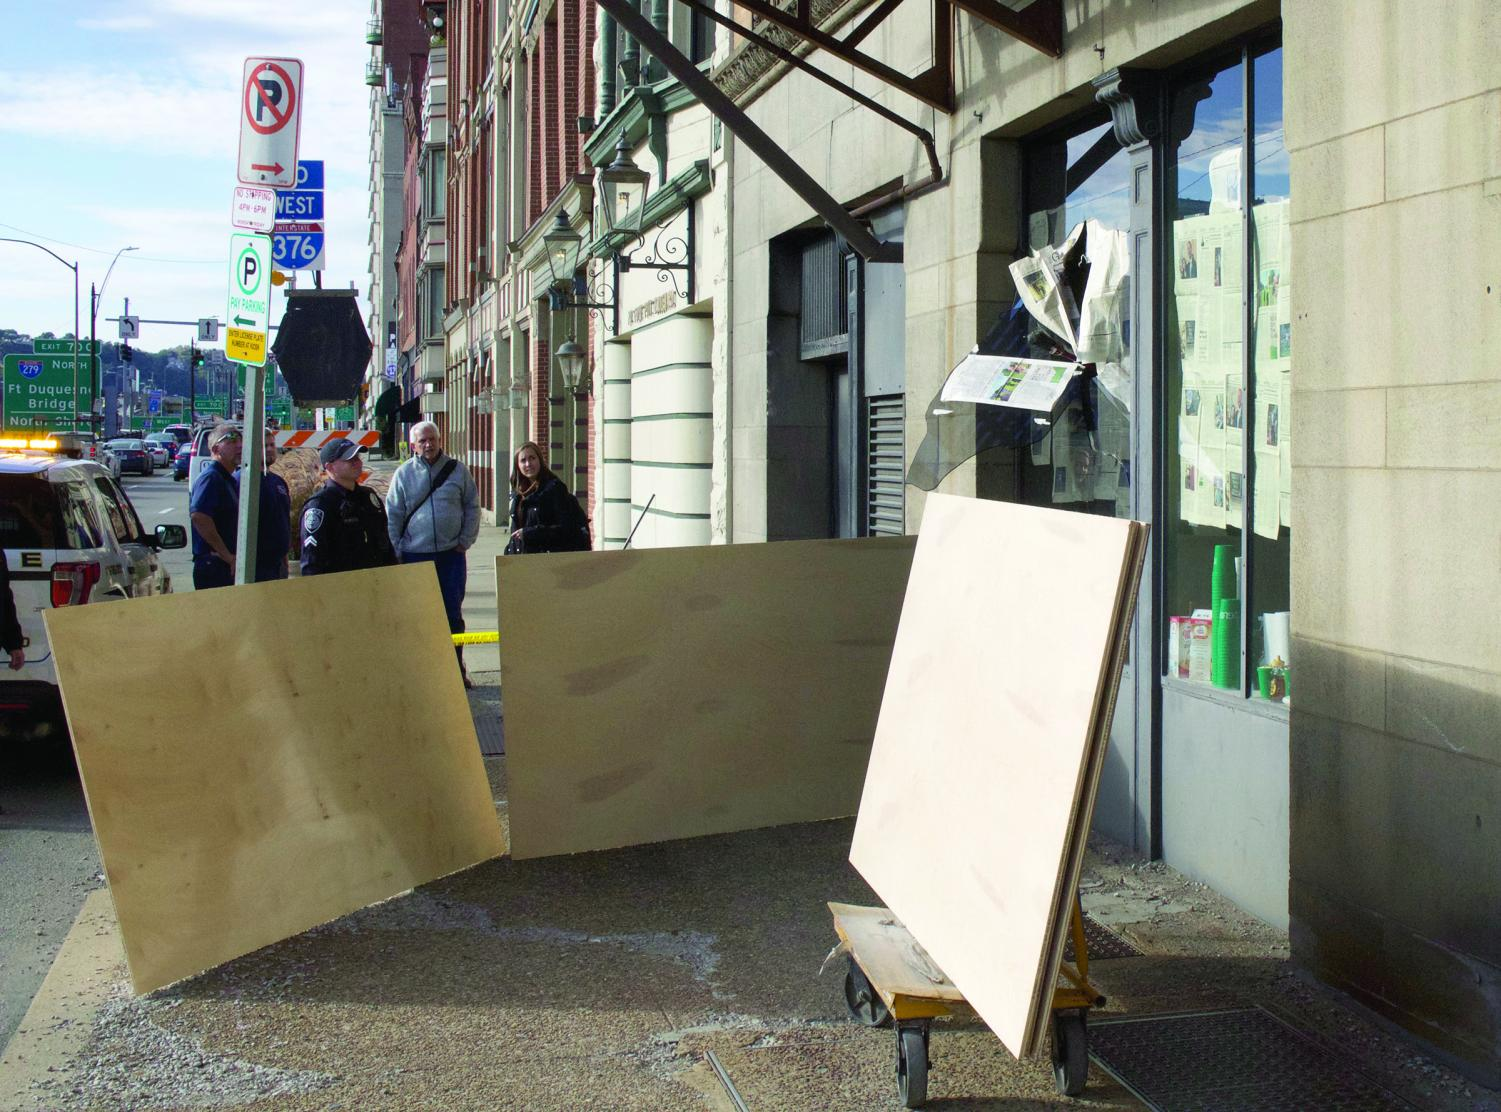 Gracey Evans | The Globe An outward-facing window in the Globe and WPPJ office began cracking around 3 p.m. on Monday while students were inside the offices. Public safety responded to the situation immediately, and the window was pushed from the inside out onto the sidewalk of Fort Pitt Boulevard. Plywood is now temporarily covering the opening, and according to an engineer for the university, it is undetermined as to when the window will be repaired. This is due to the glass company having to special order the tempered glass.